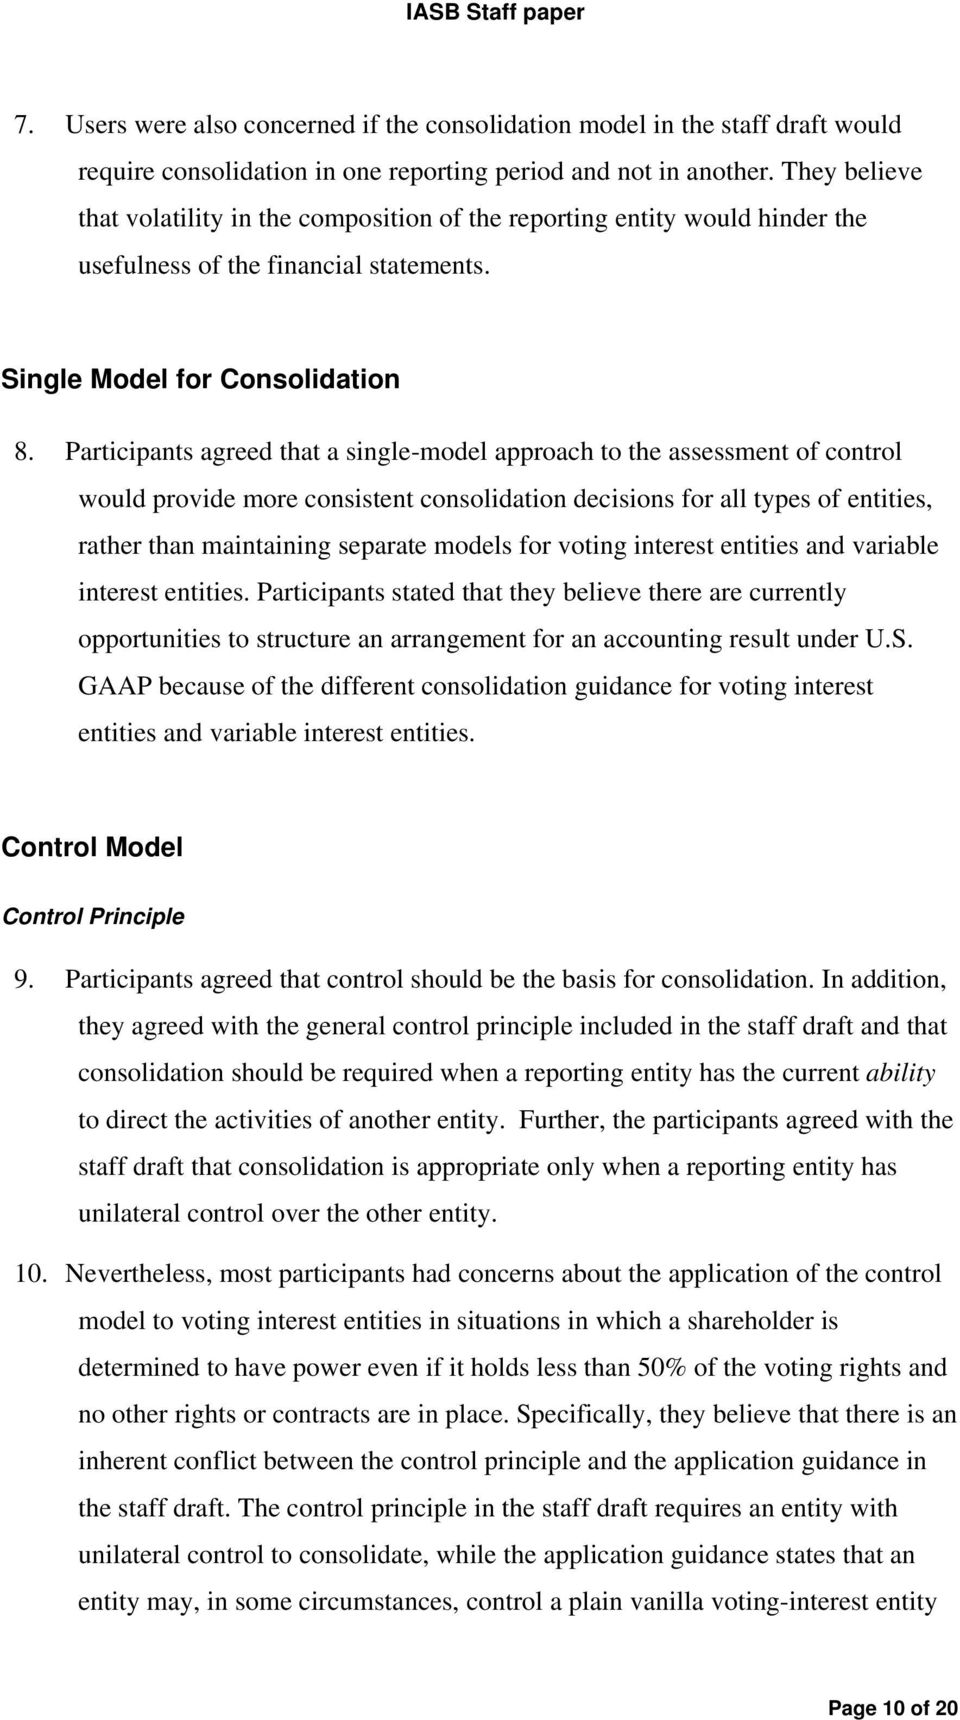 Participants agreed that a single-model approach to the assessment of control would provide more consistent consolidation decisions for all types of entities, rather than maintaining separate models